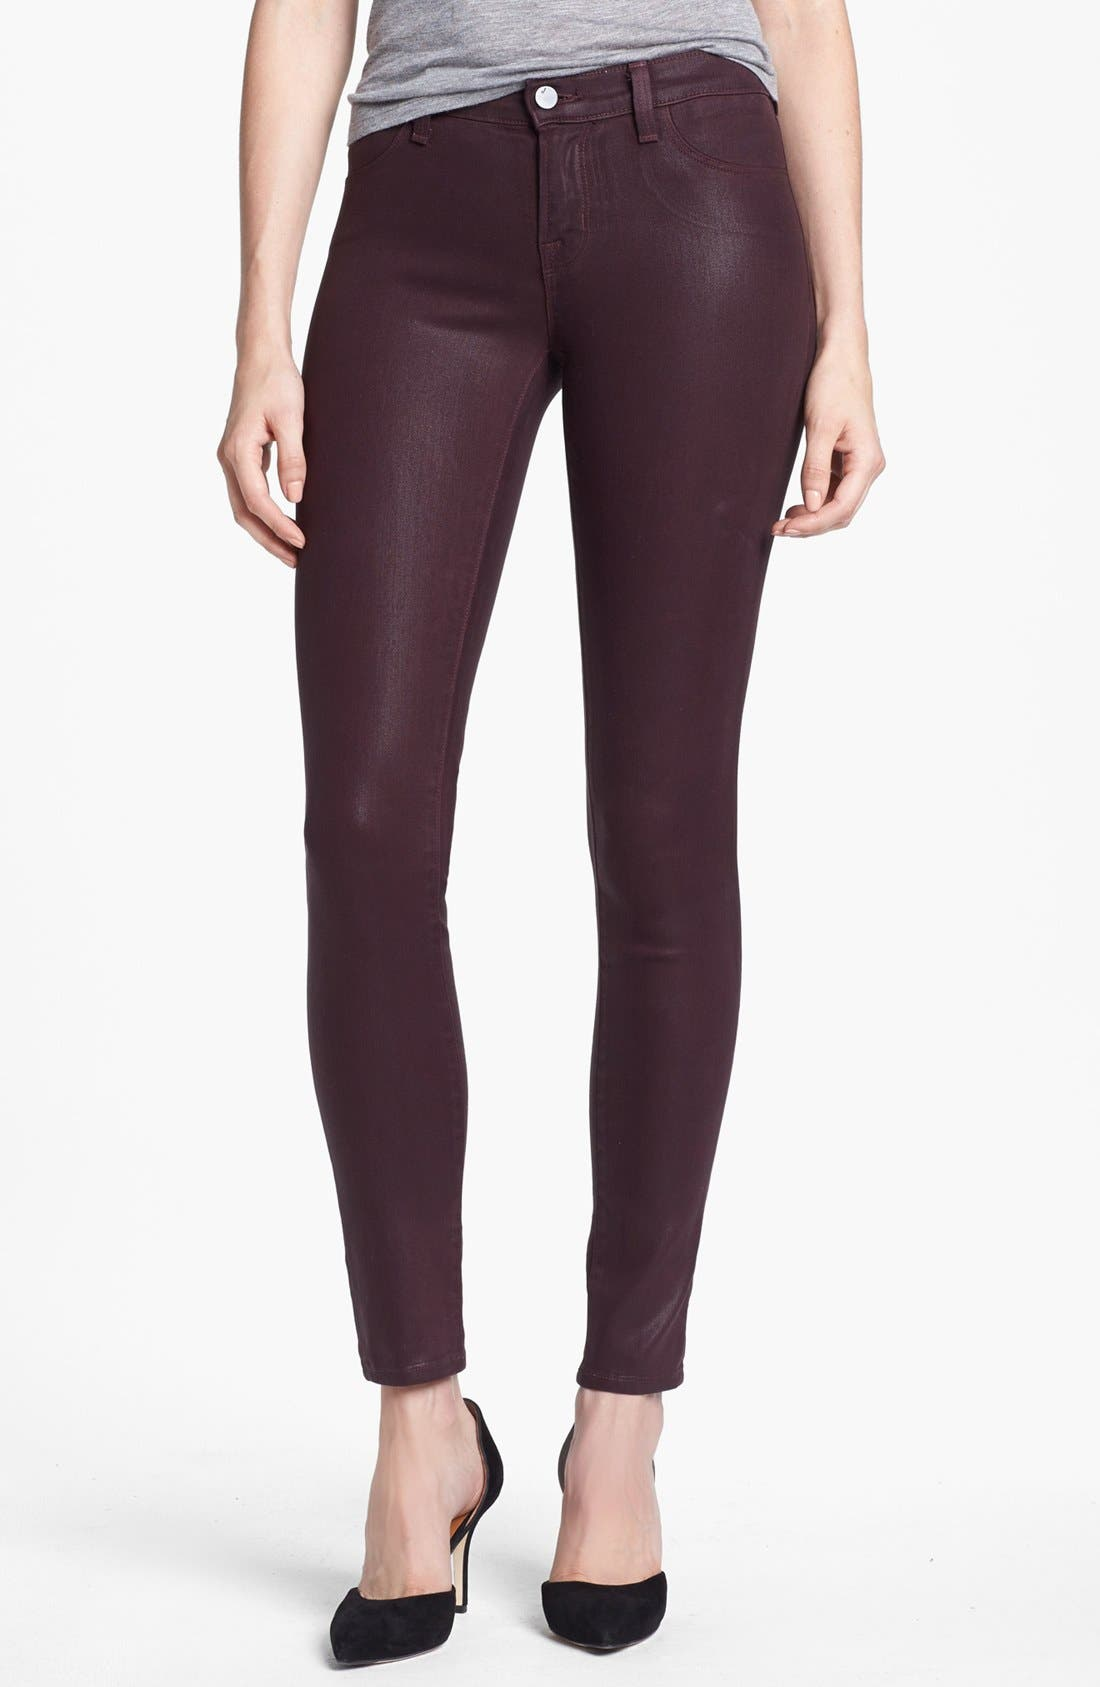 Alternate Image 1 Selected - J Brand '485' Coated Skinny Jeans (Laquered Pinot)